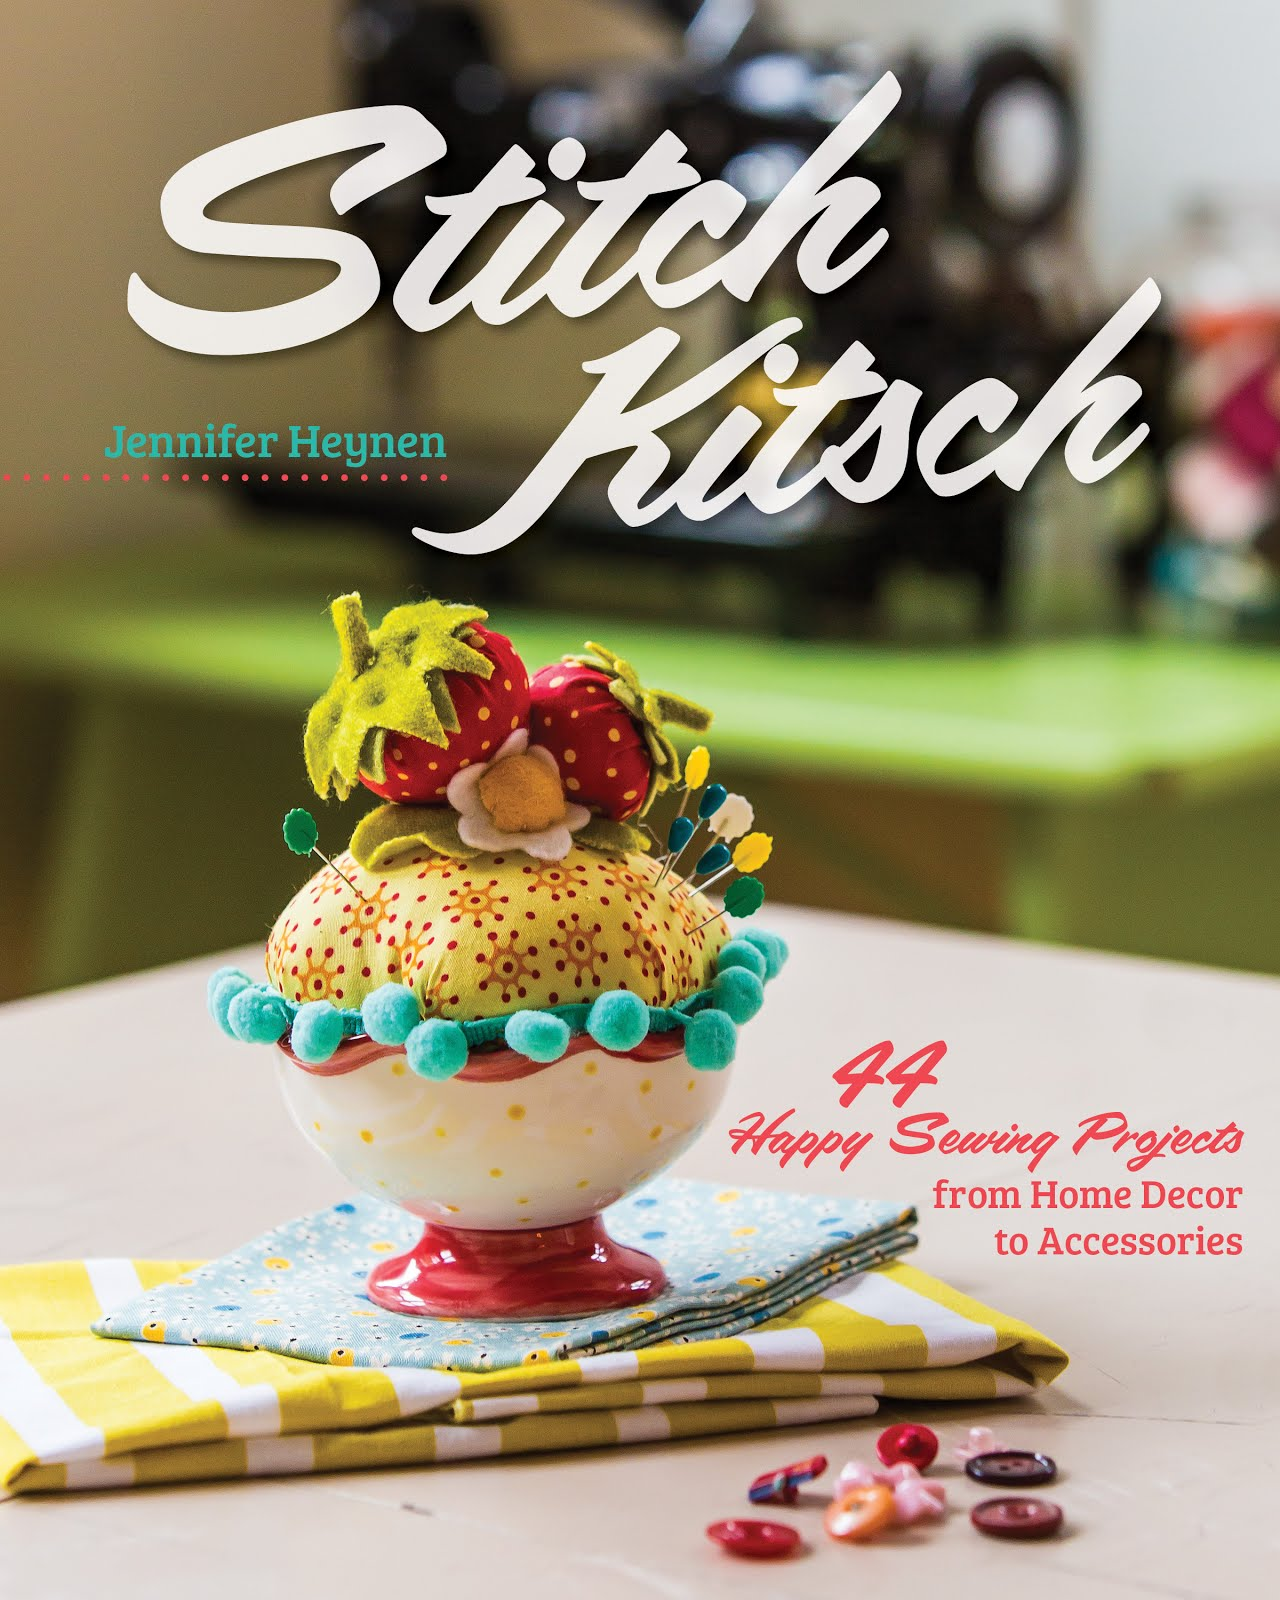 BOOK: Stitch Kitsch